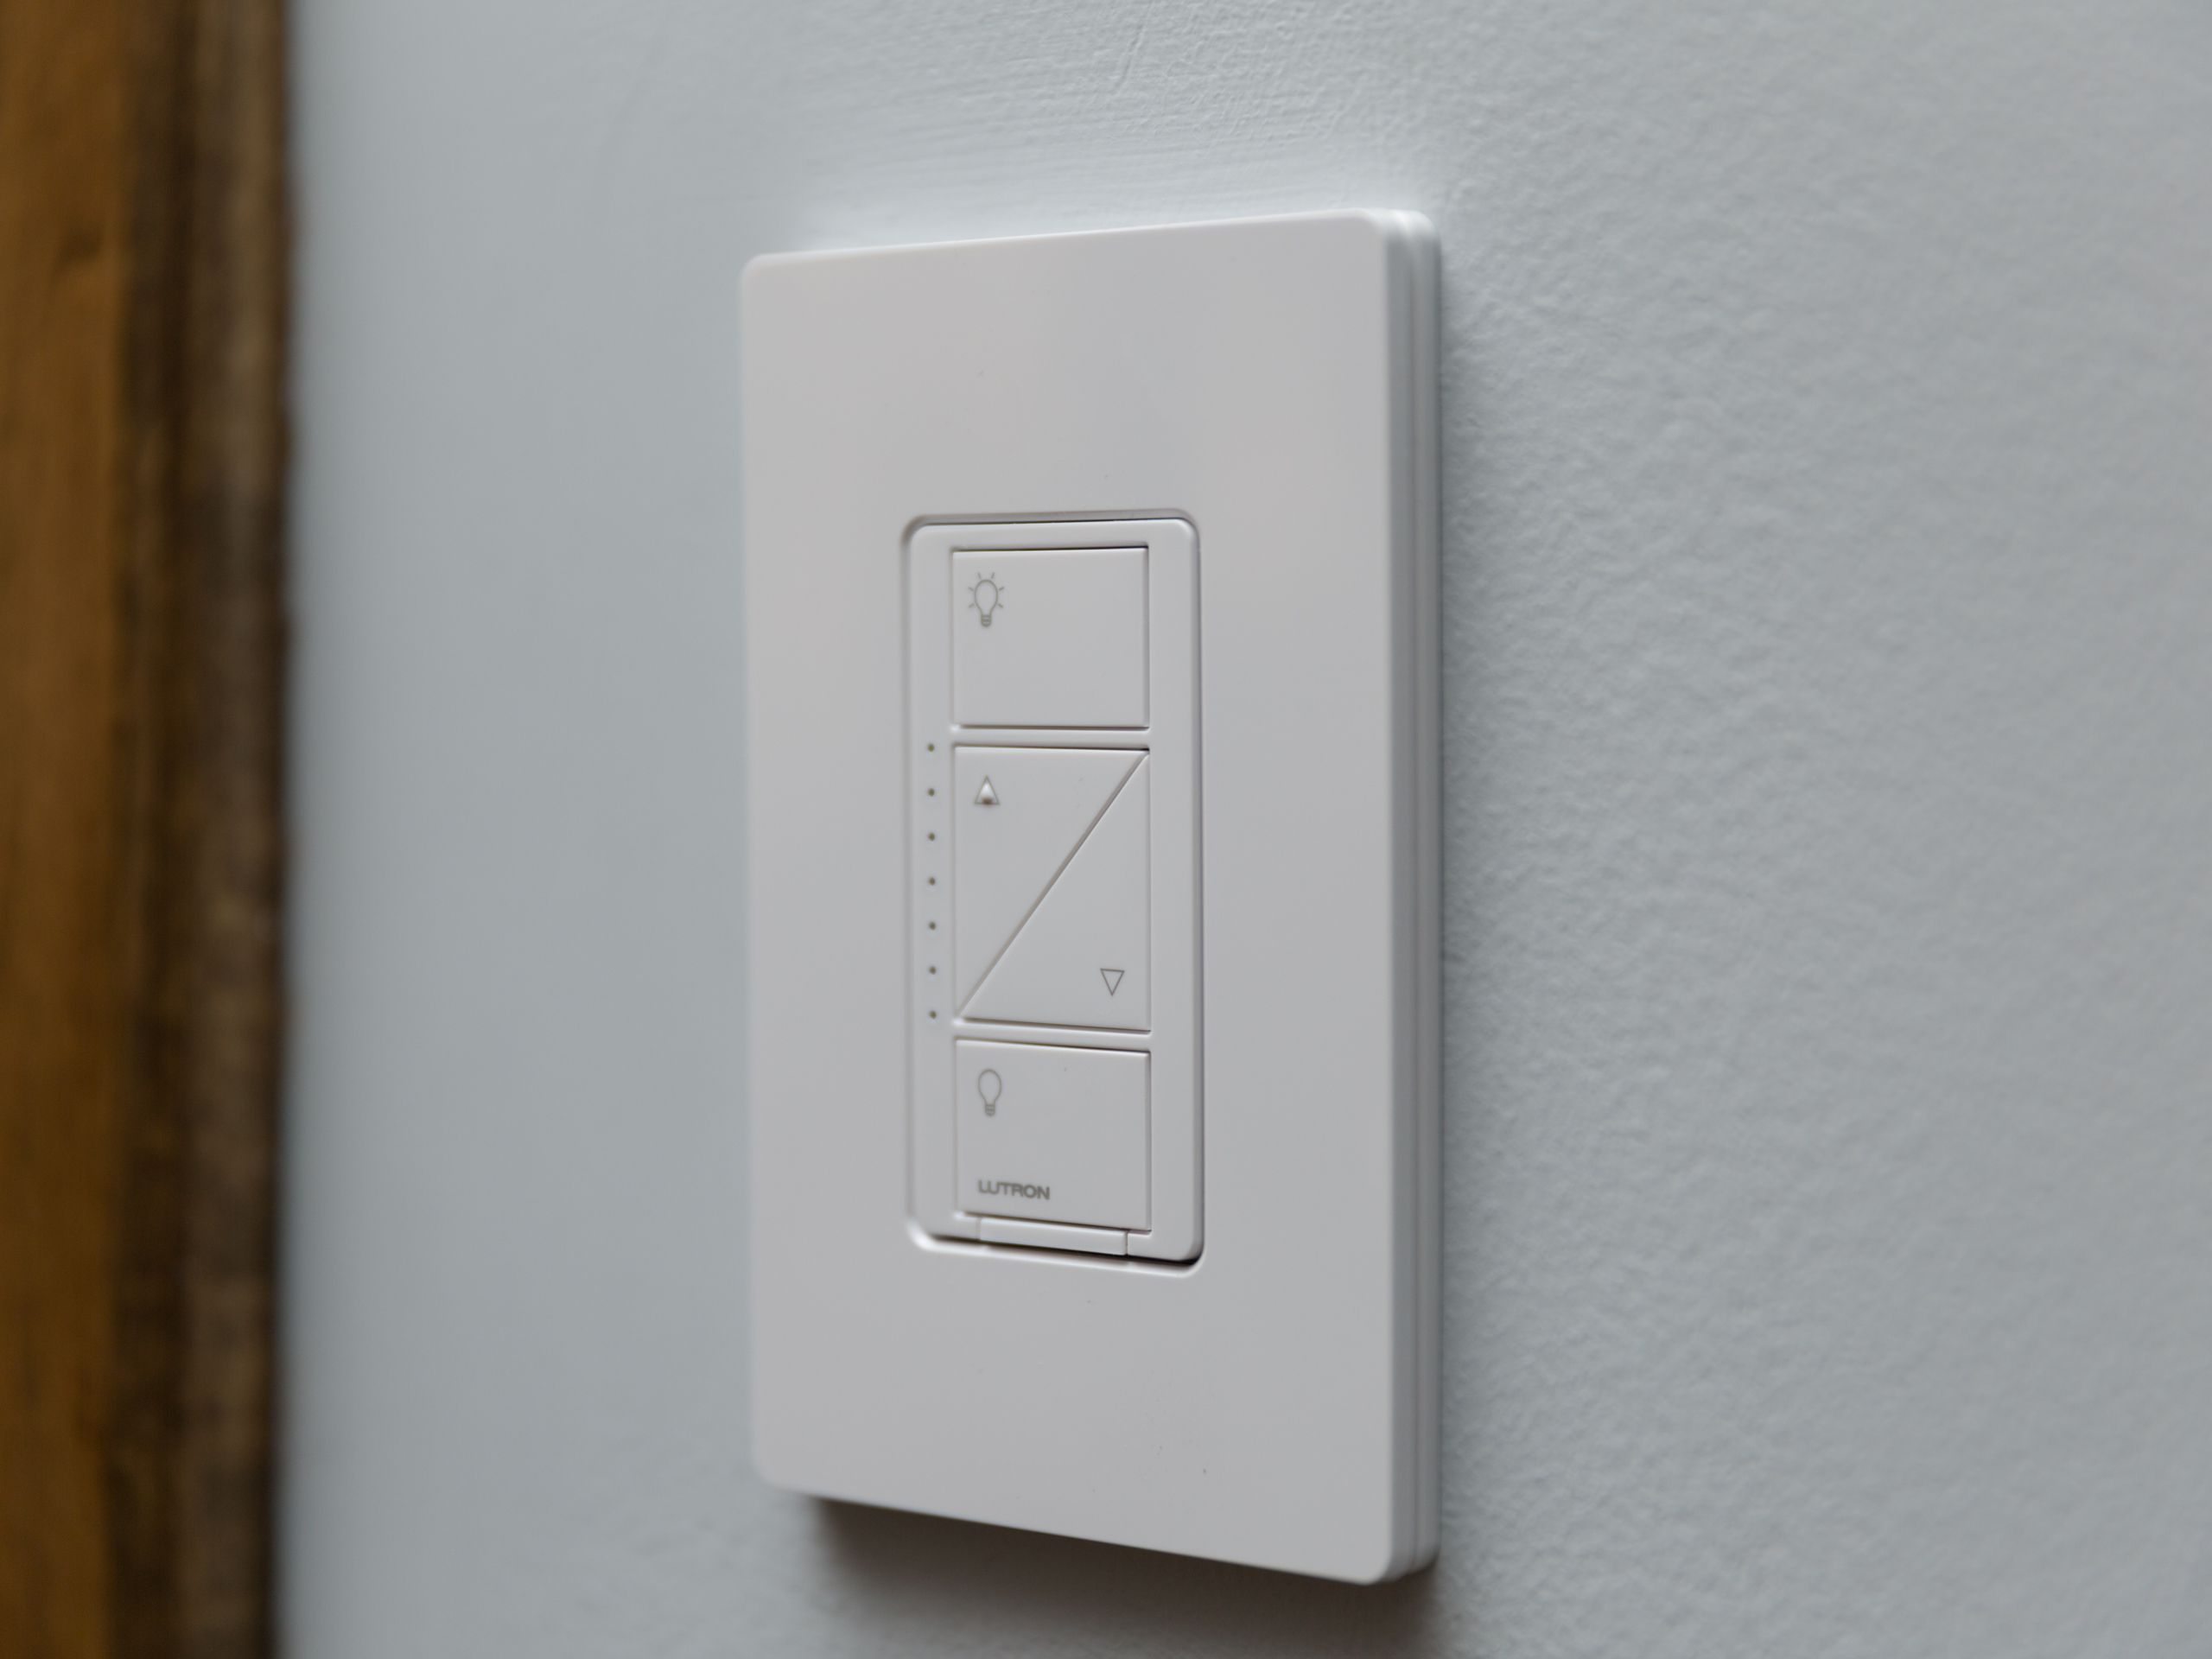 Smarter than the average smart switch